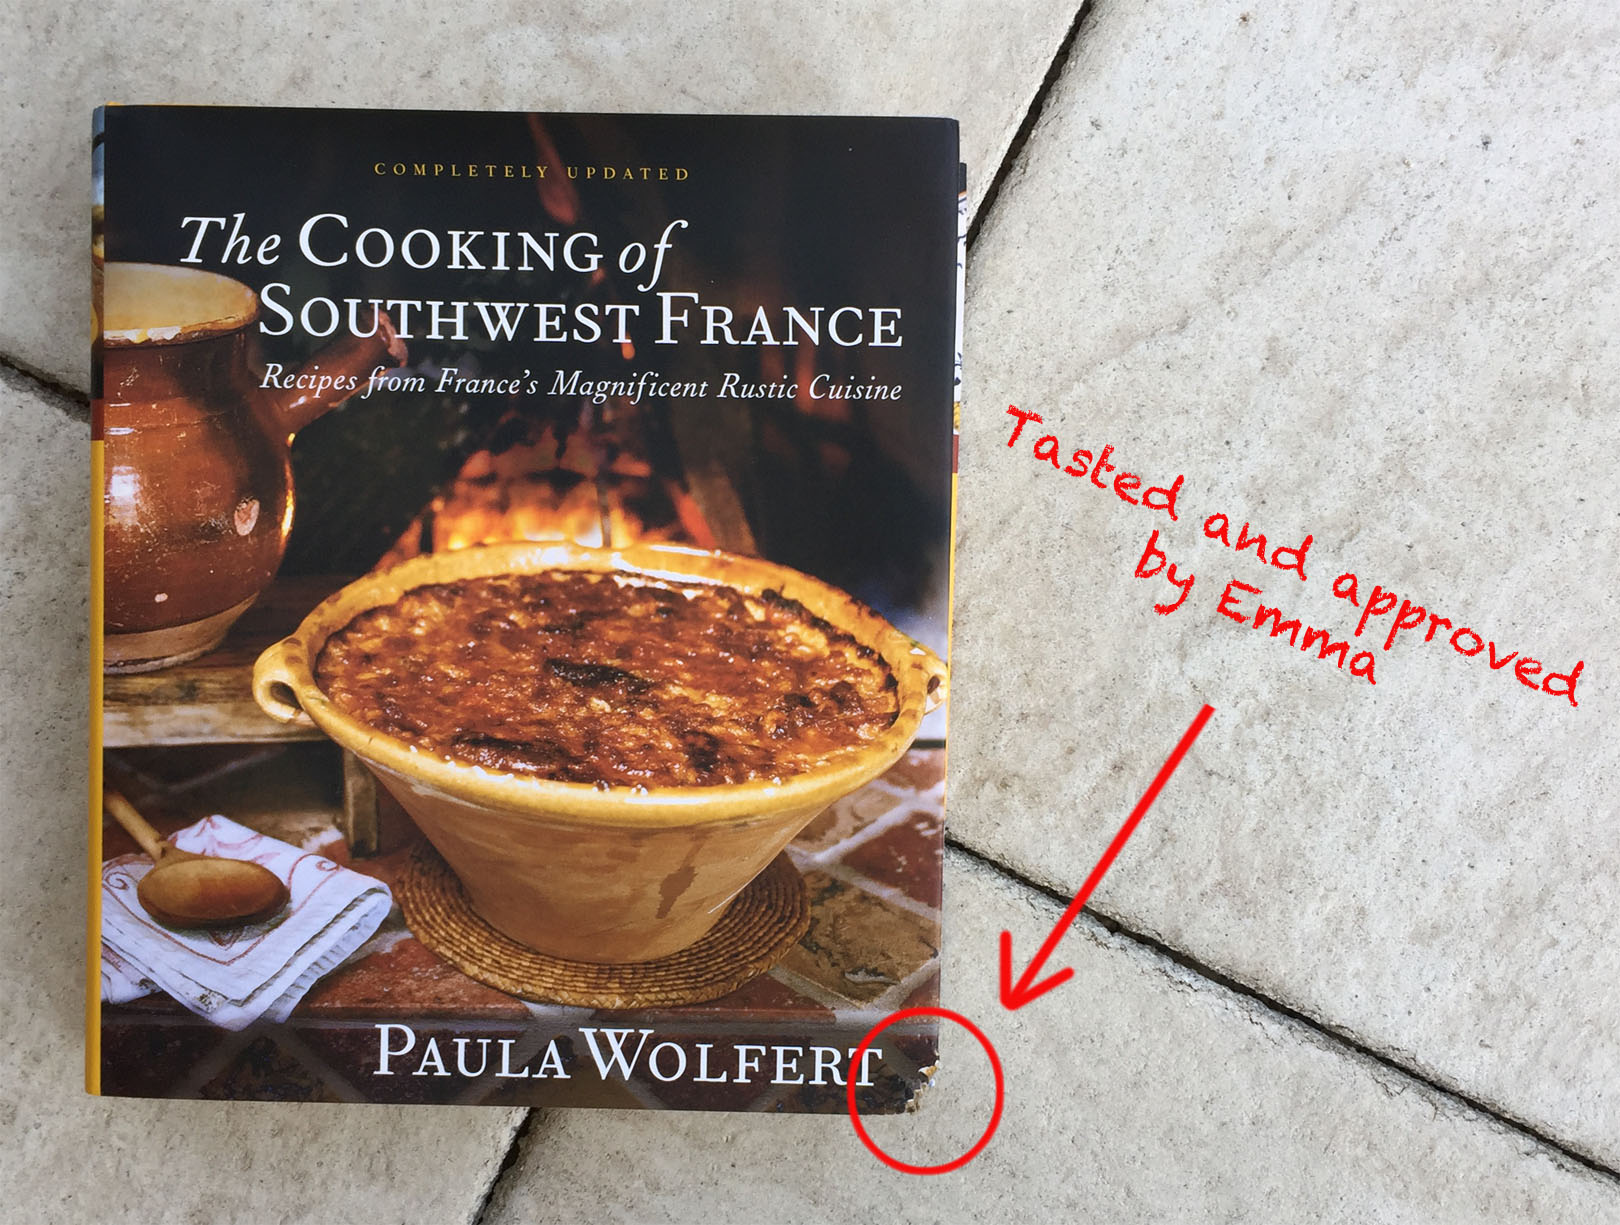 Cooking of Southwest France by Paula Wolfert